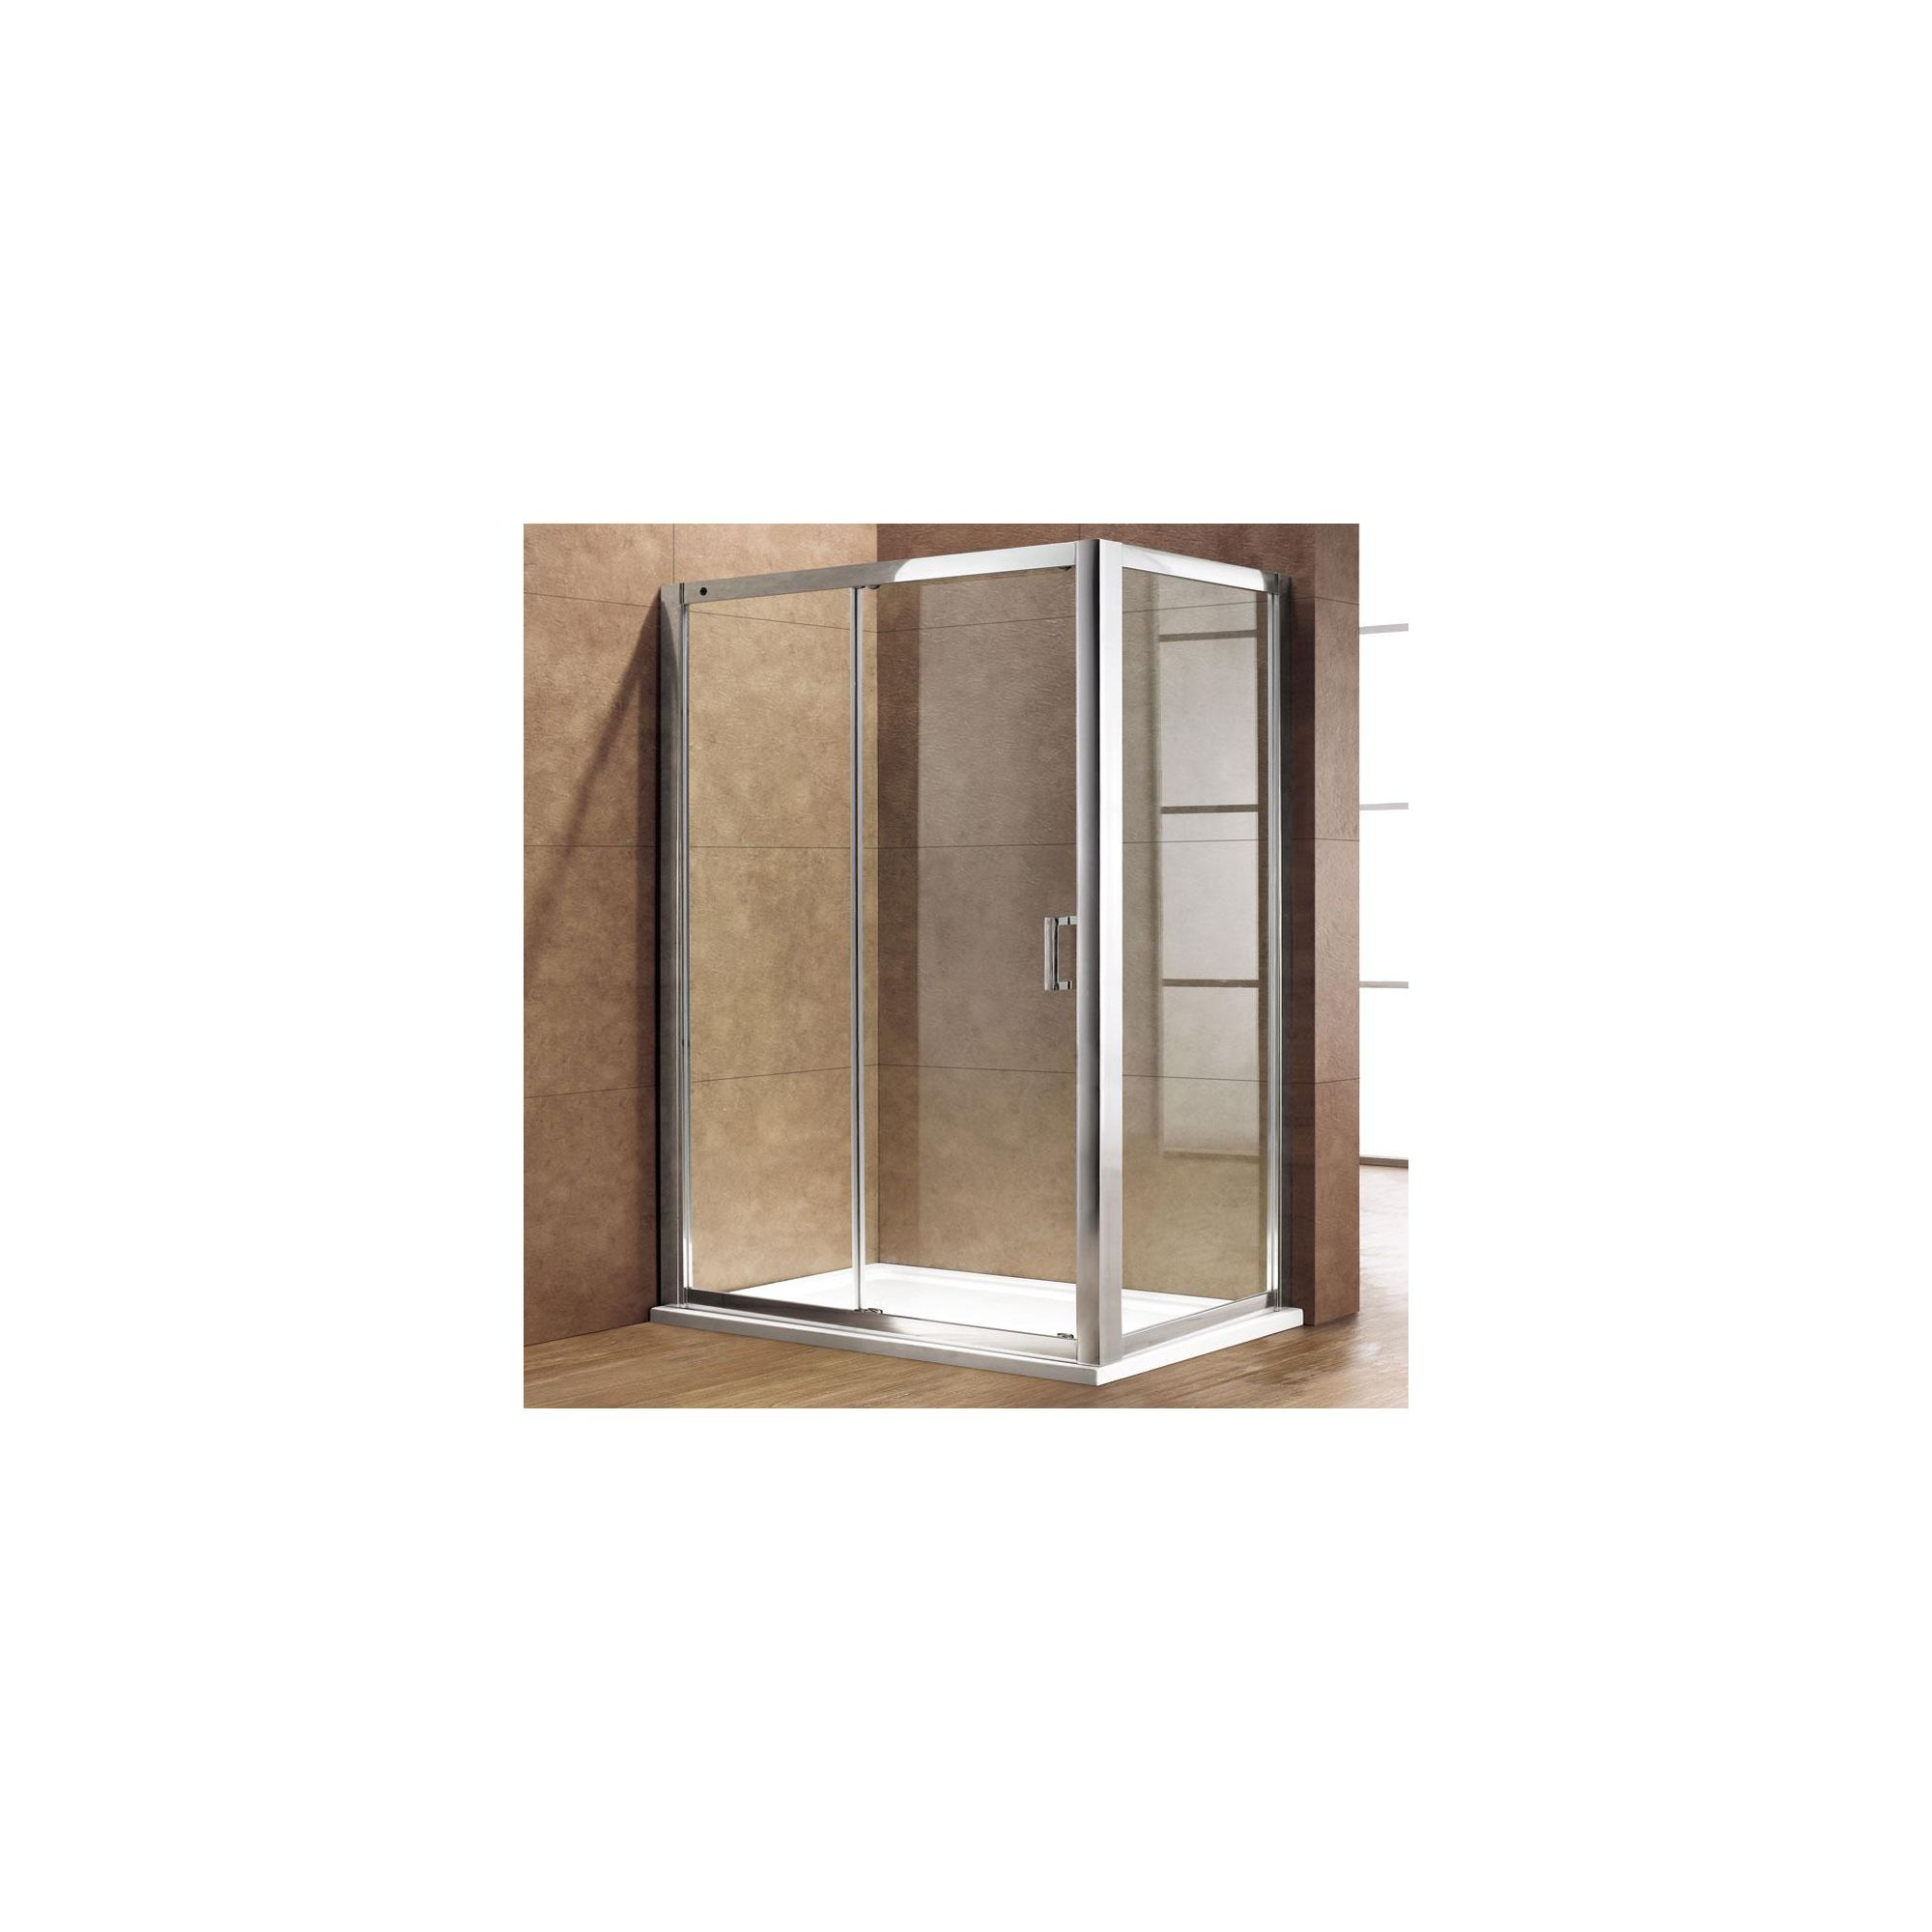 Duchy Premium Single Sliding Door Shower Enclosure, 1200mm x 760mm, 8mm Glass, Low Profile Tray at Tesco Direct